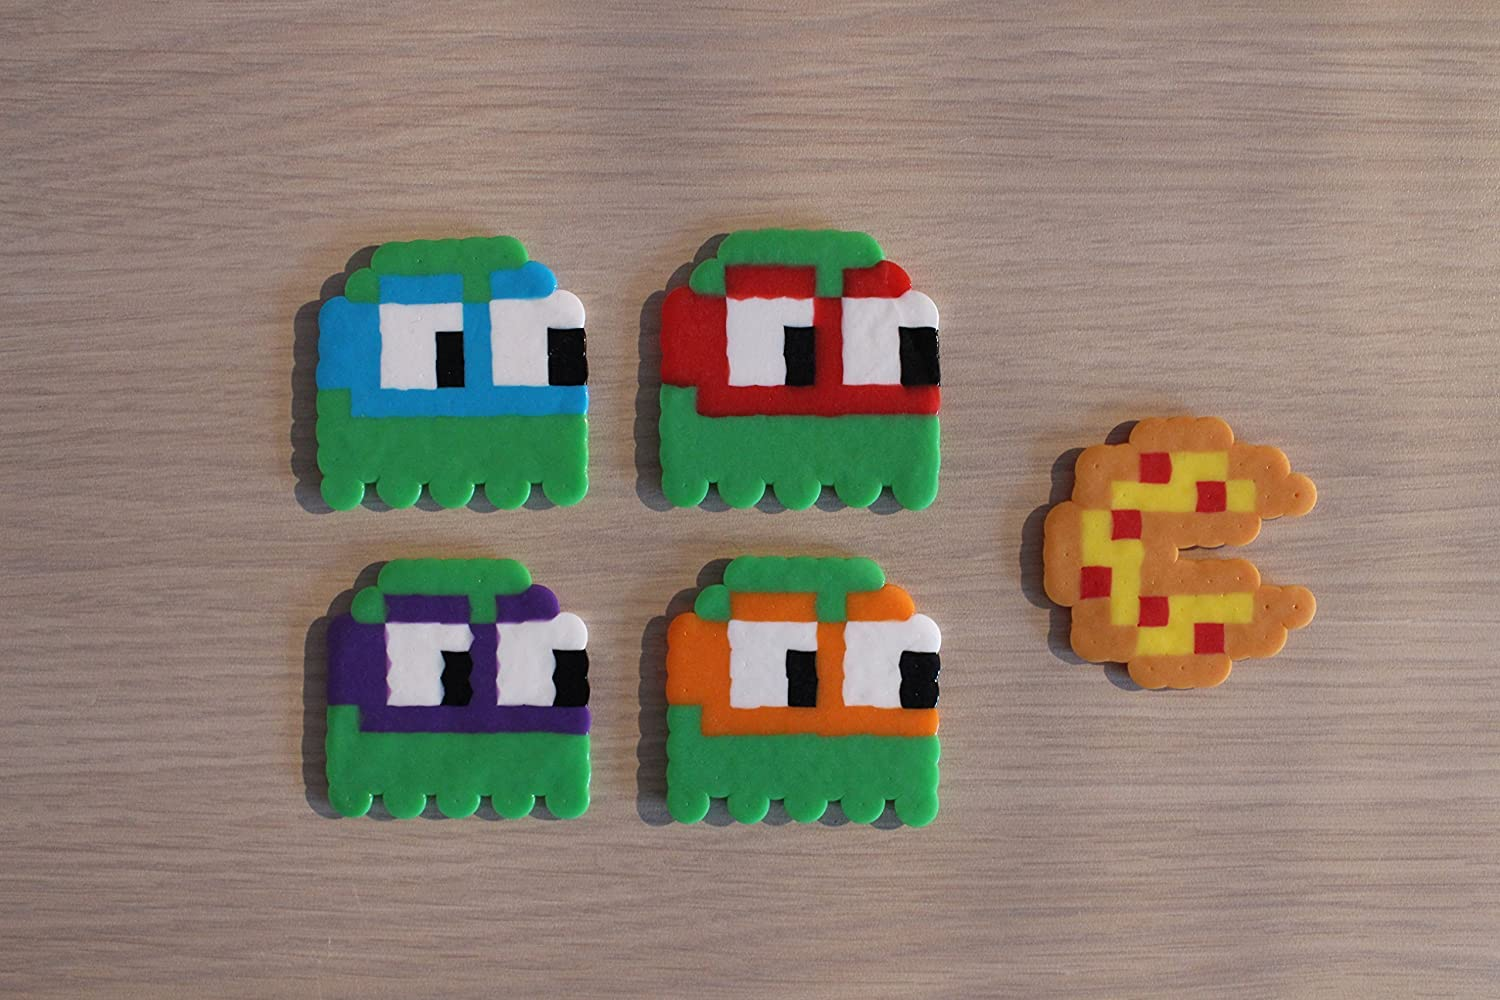 Ninja Turtles / Pac-Man Ghosts Pixel Art Bead Sprites from the Teenage Mutant Ninja Turtles Franchise